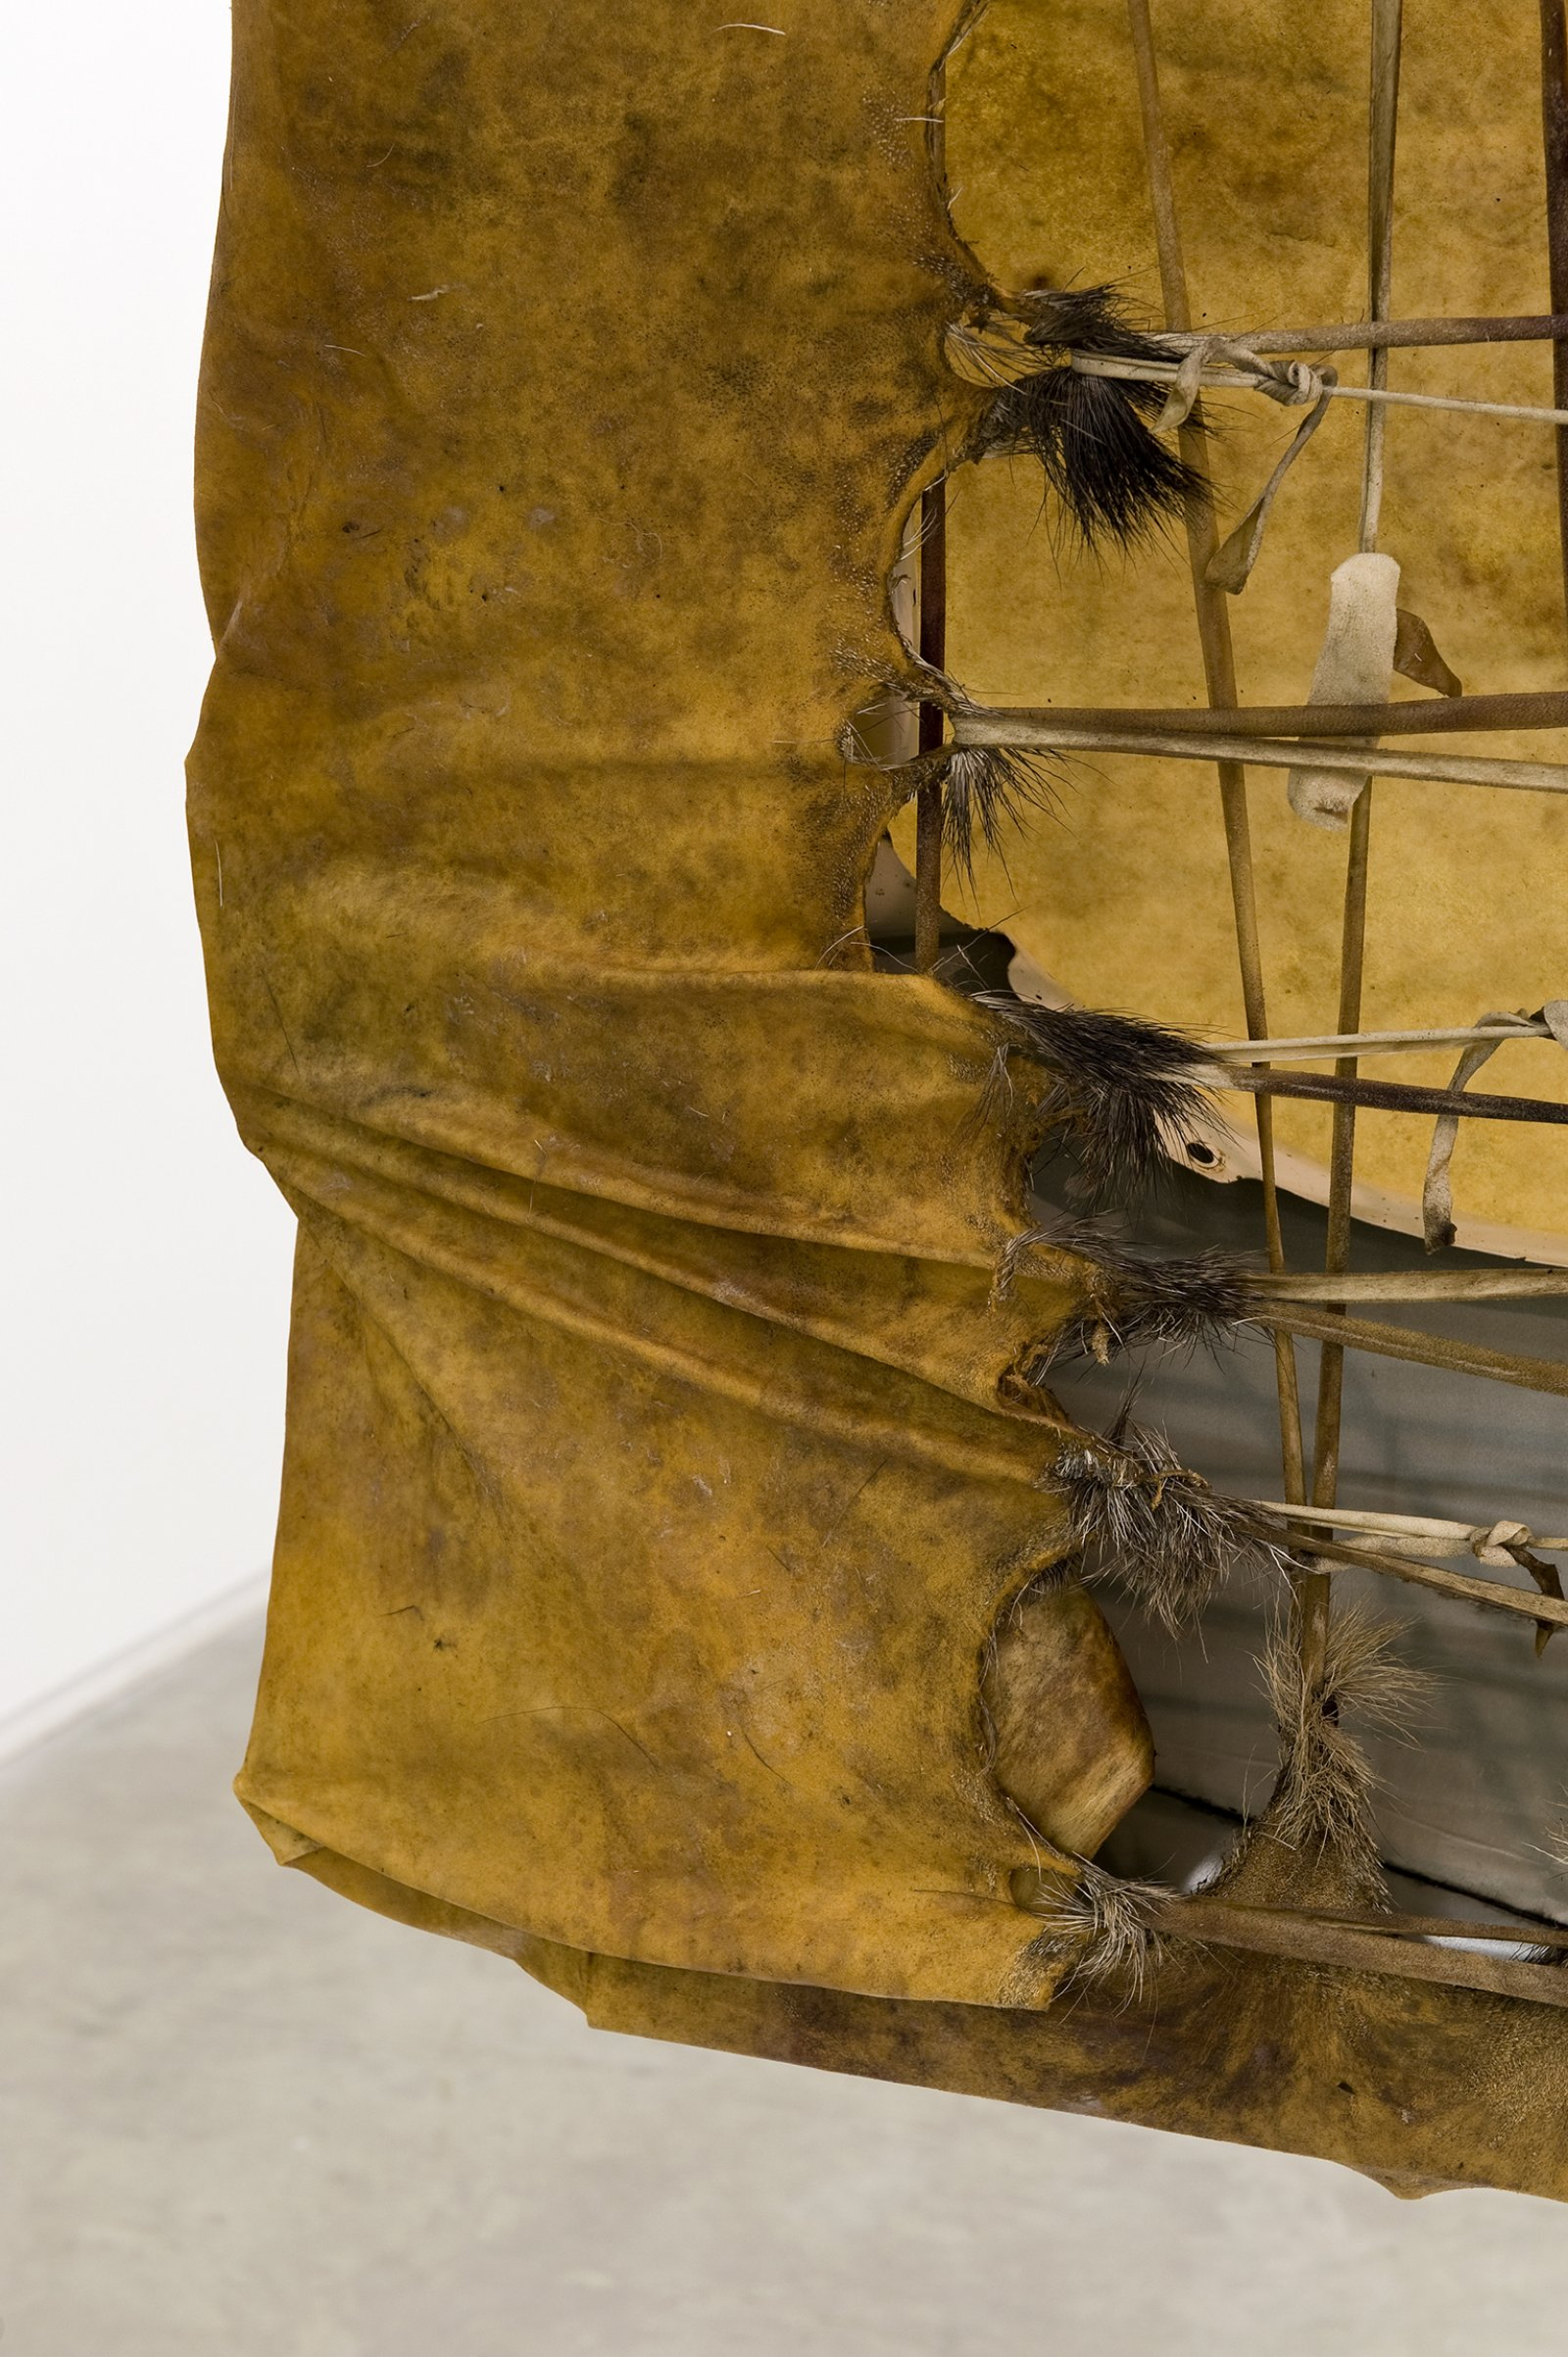 Brian Jungen, Tomorrow, Repeated (detail), 2010, moose hide, car fenders, chest freezer, steel, 96 x 61 x 30 in. (244 x 156 x 75 cm) by Brian Jungen